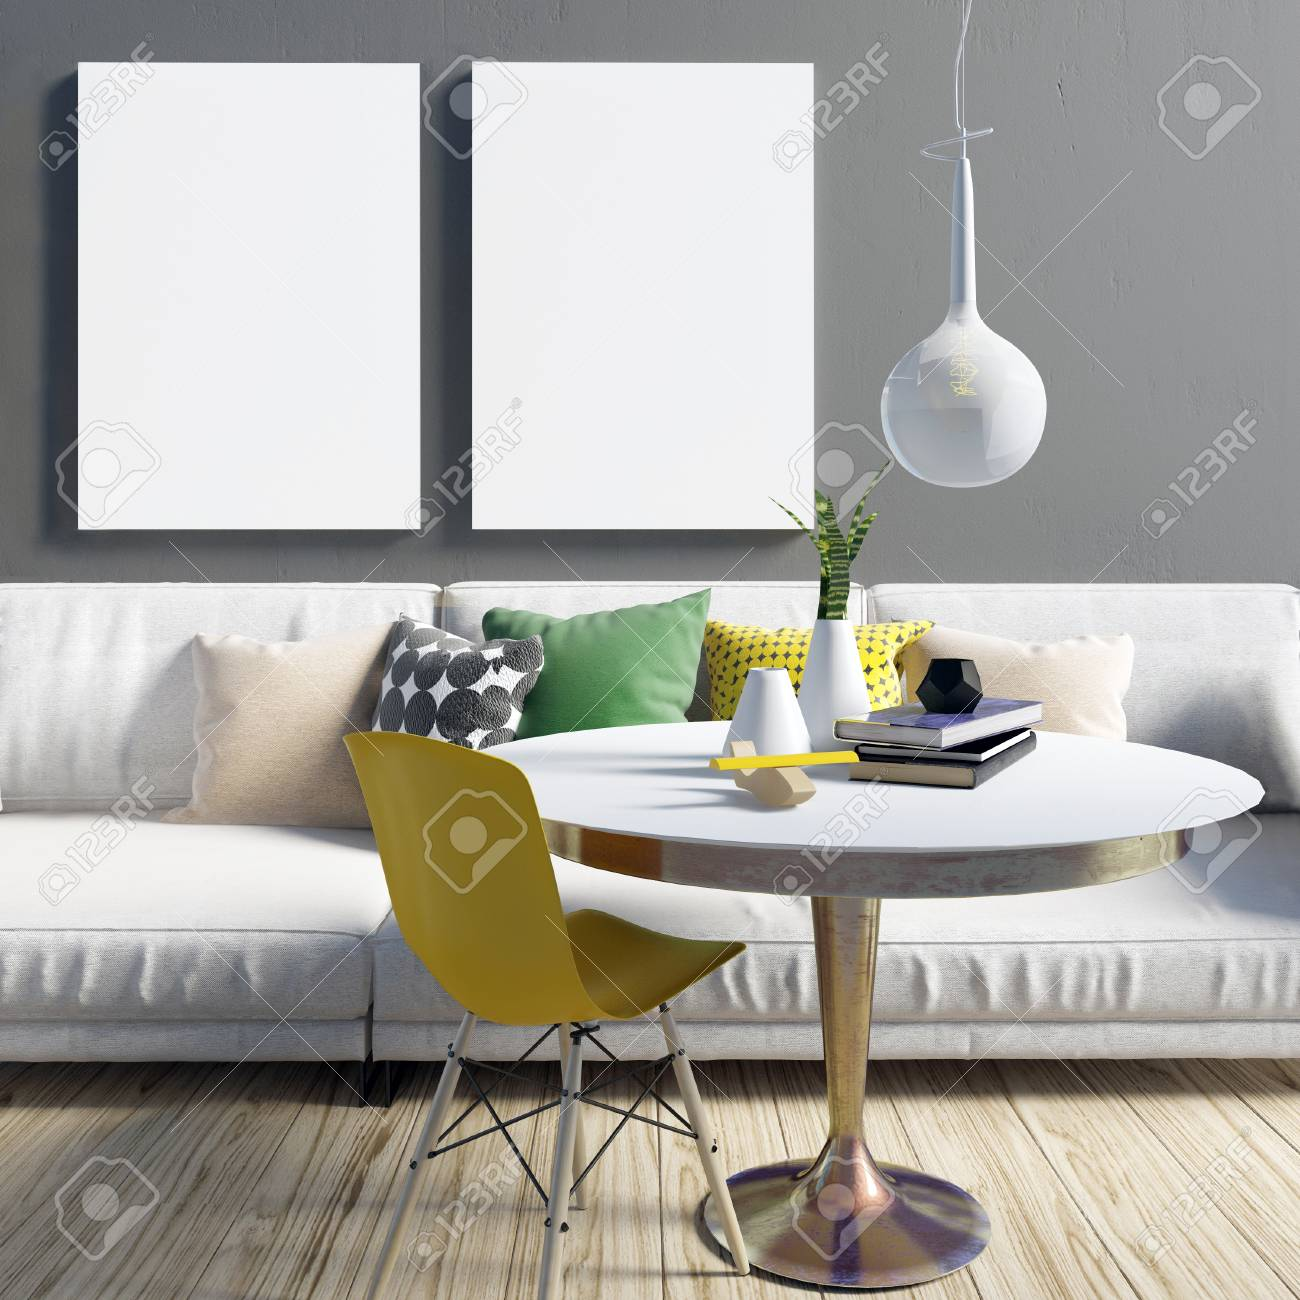 Cozy Modern Living Room Interior In Contrasting Colours. Relaxation ...